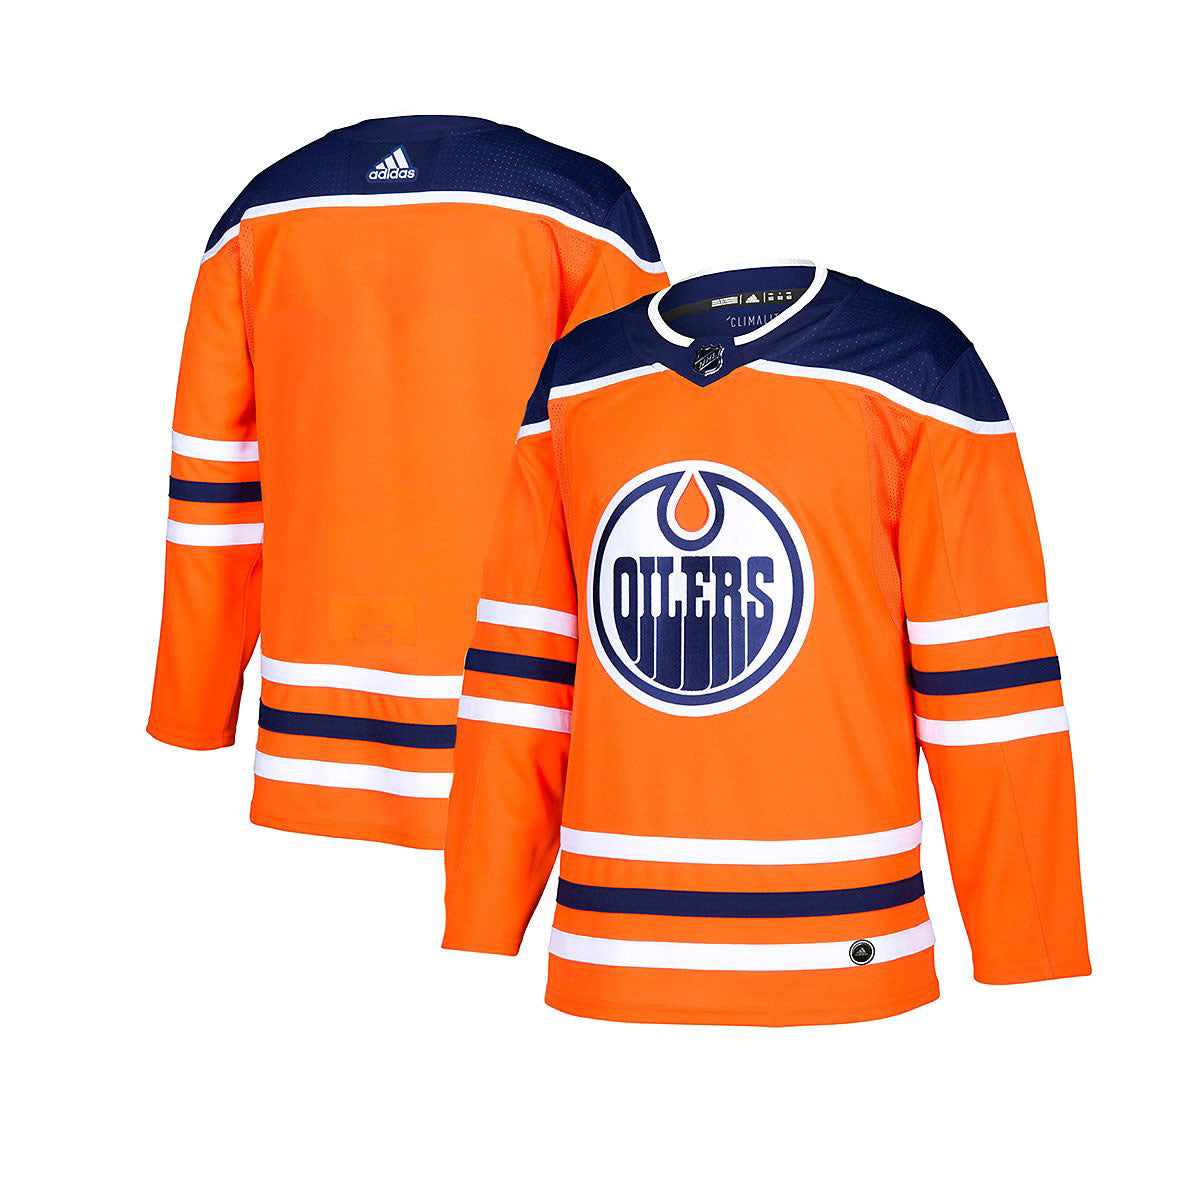 detailed look 9f445 2cb6c Edmonton Oilers Adidas Authentic Senior Home Jersey